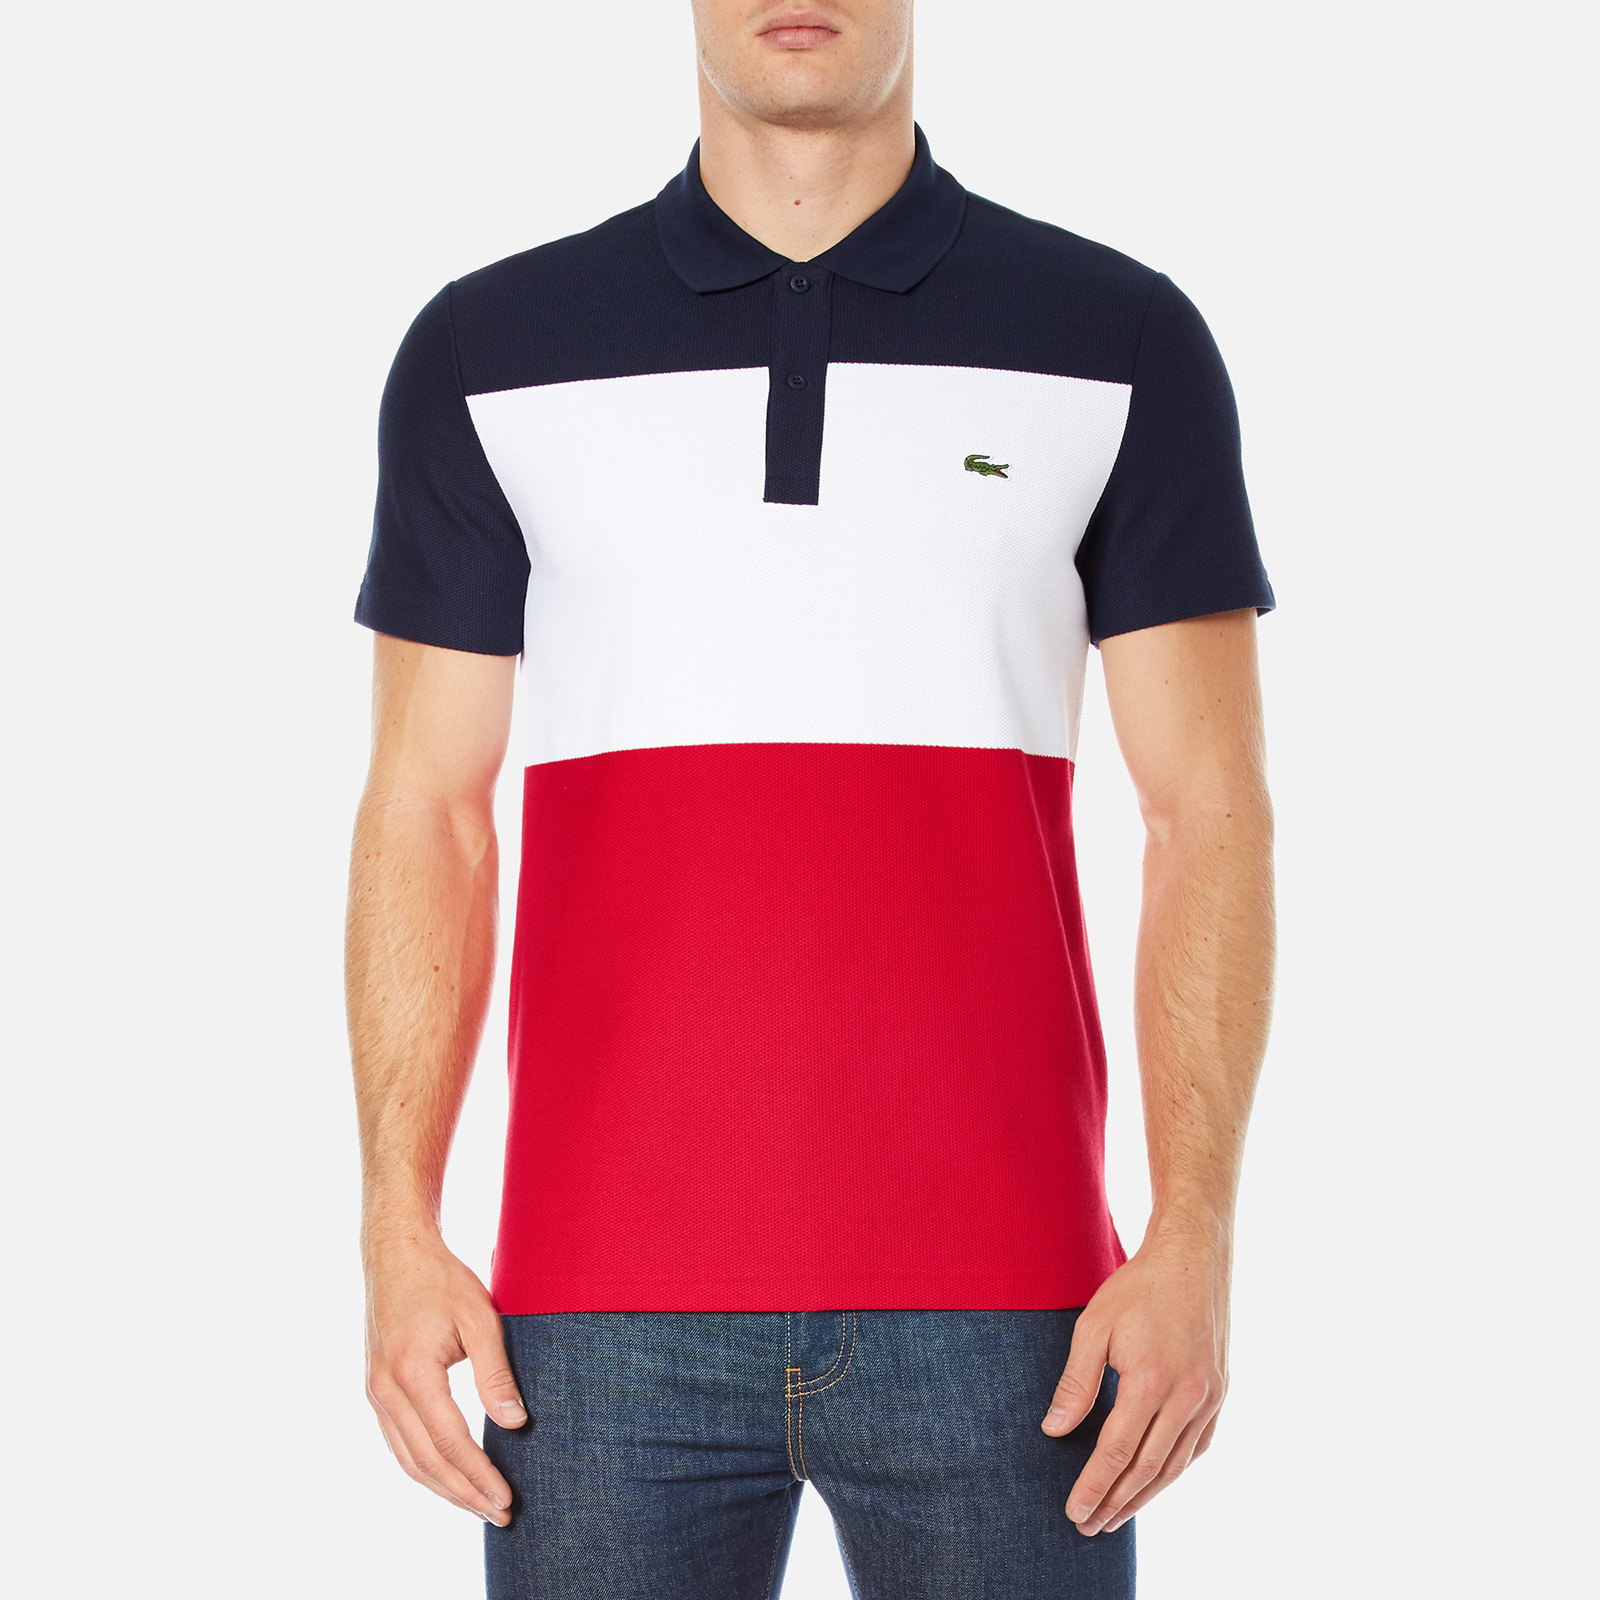 980f9bd2 Lacoste Men's Short Sleeve Bold Stripe Polo Shirt - Navy Blue/White/Red -  Free UK Delivery over £50